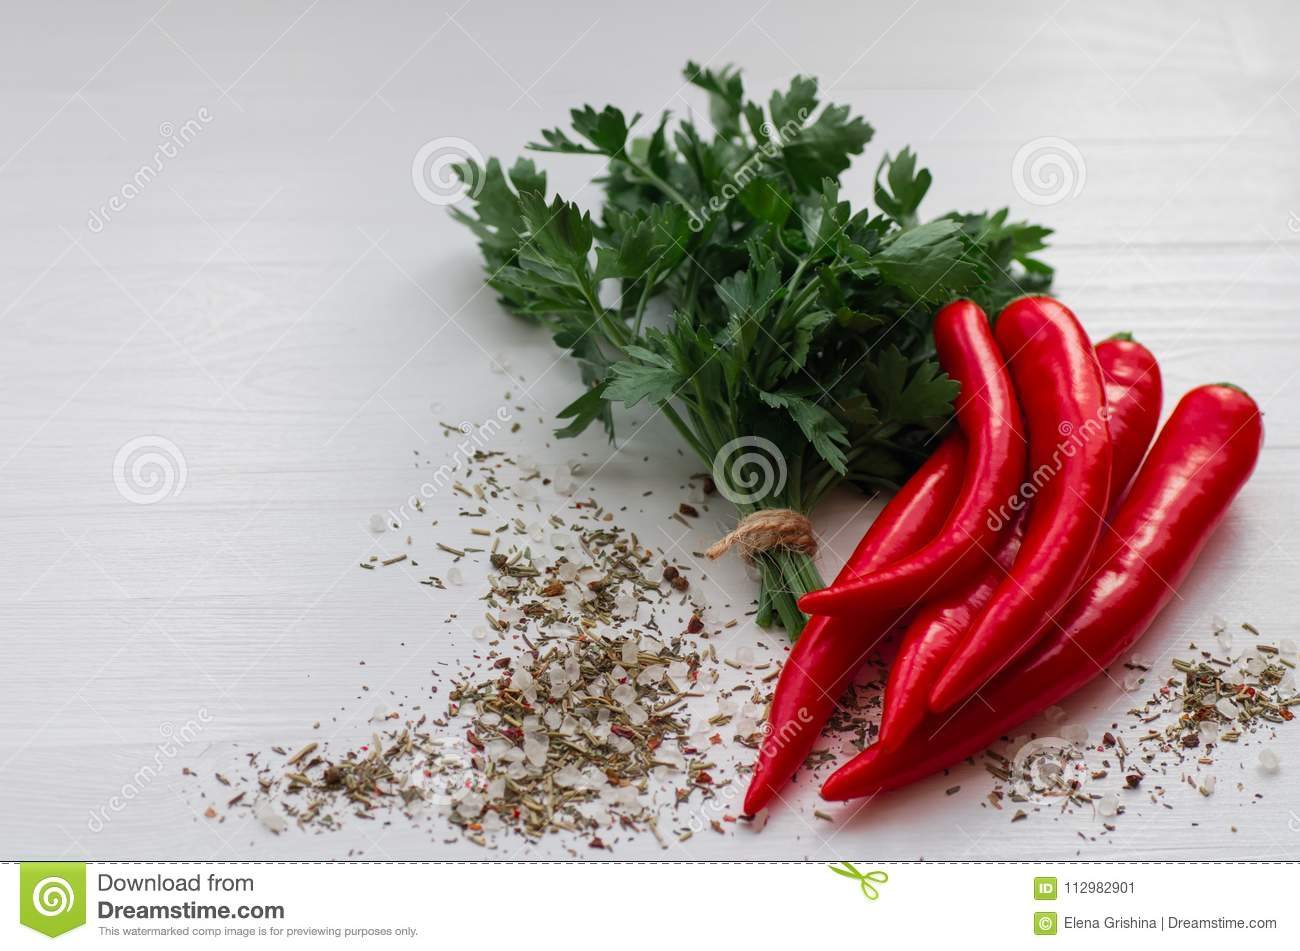 Parsley and spice leaves. Red chili peppers on white background.